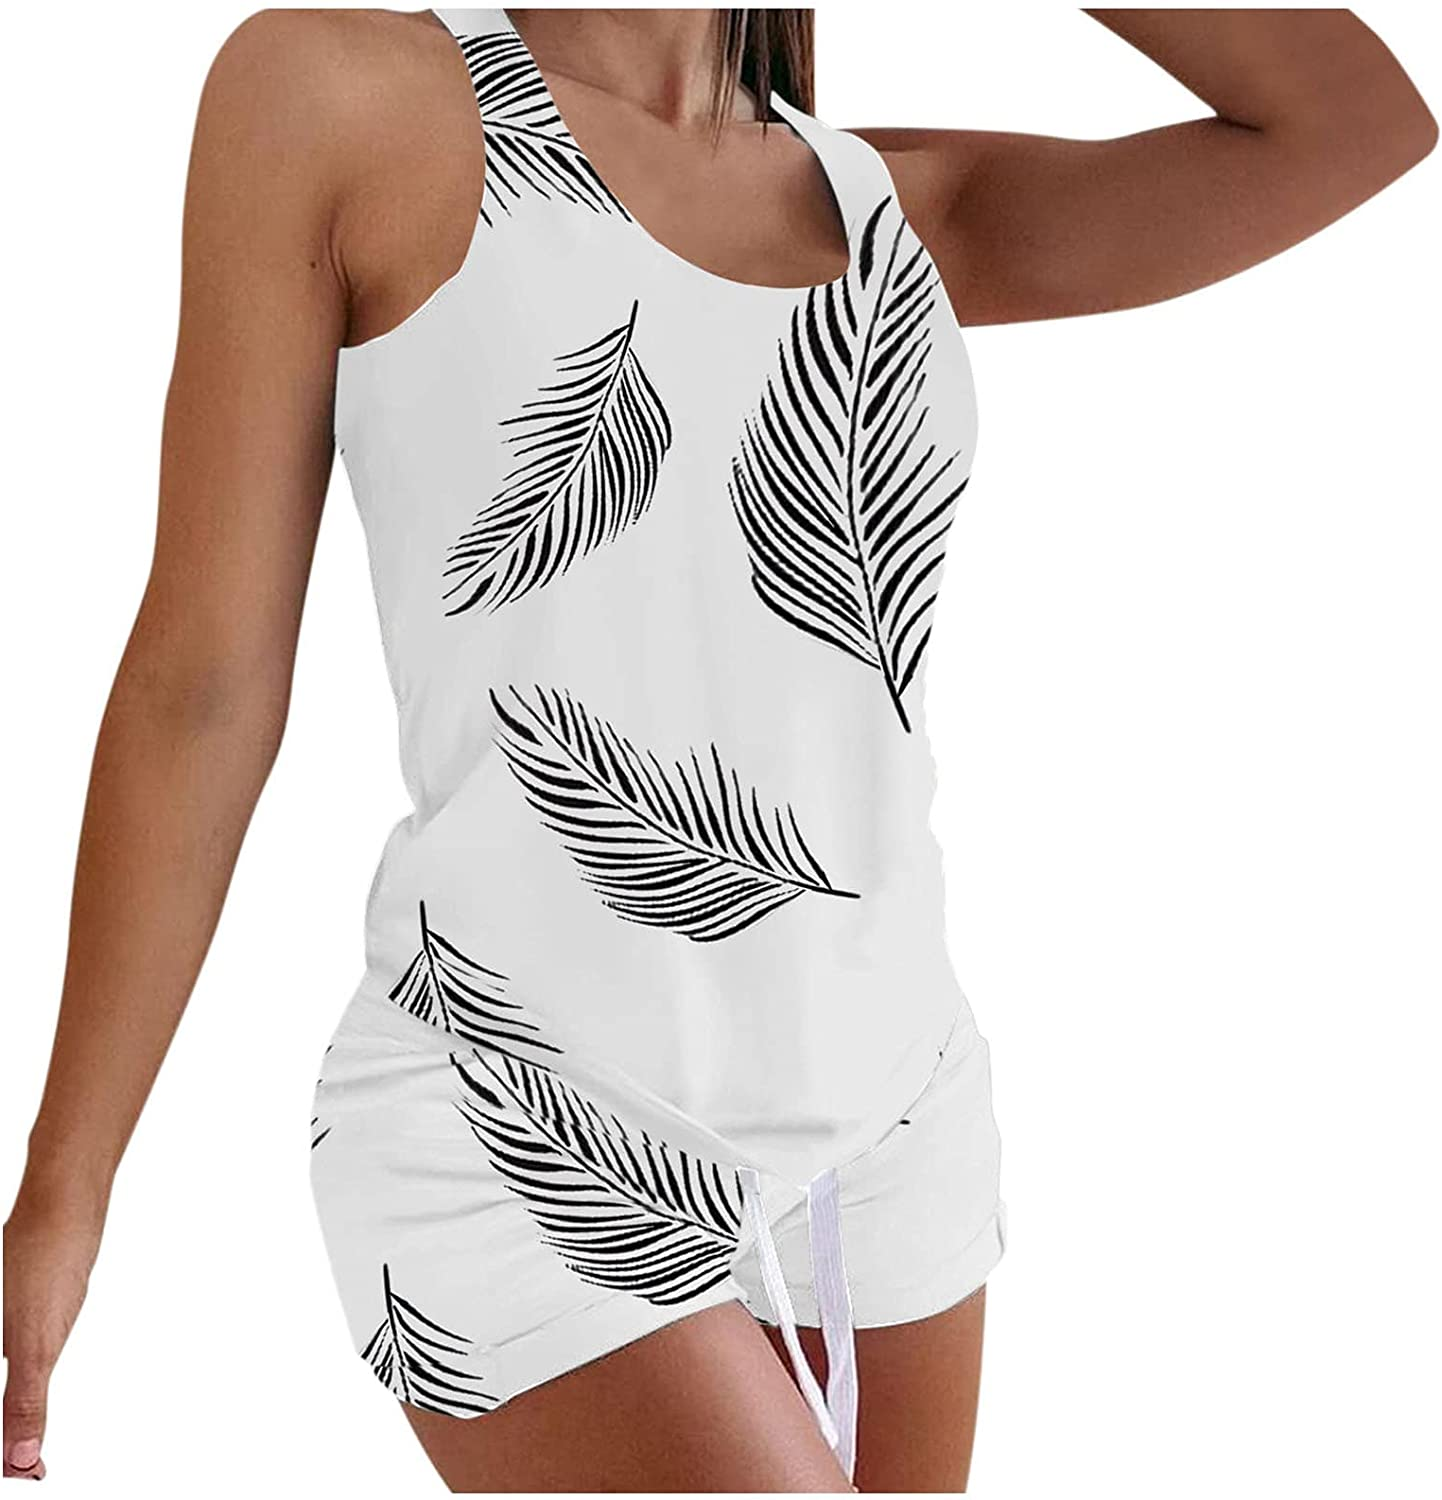 Thklokt Women's Sleepwear Sleeveless Printing Casual Loose Vest Two-Piece Suit with Shorts Super Comfy Soft Fabric Nightwear